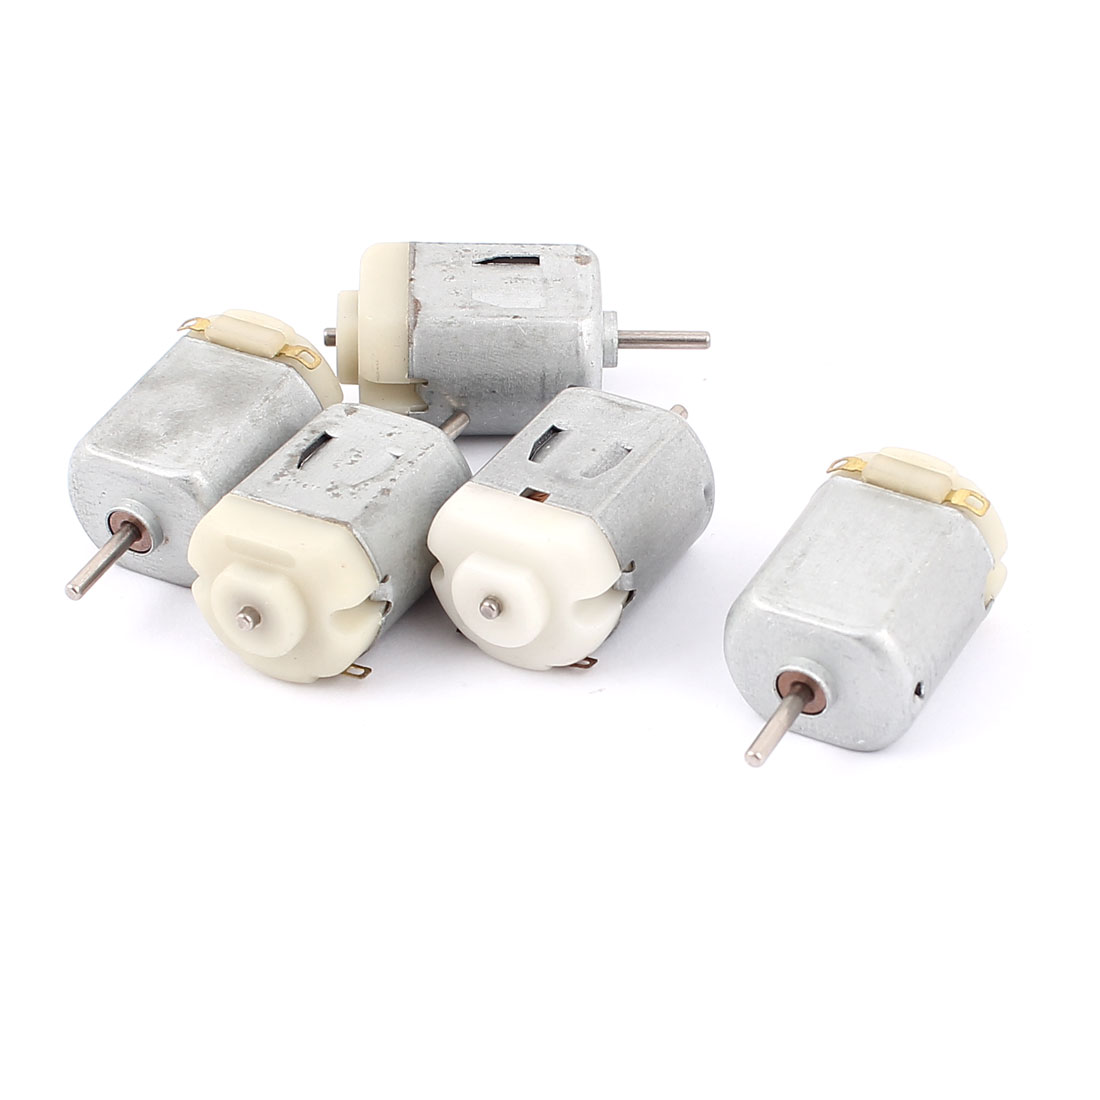 5pcs 3V 8000RPM High Speed 2mm Round Shaft Magnetic Electric Micro DC Motor for RC Model Toy